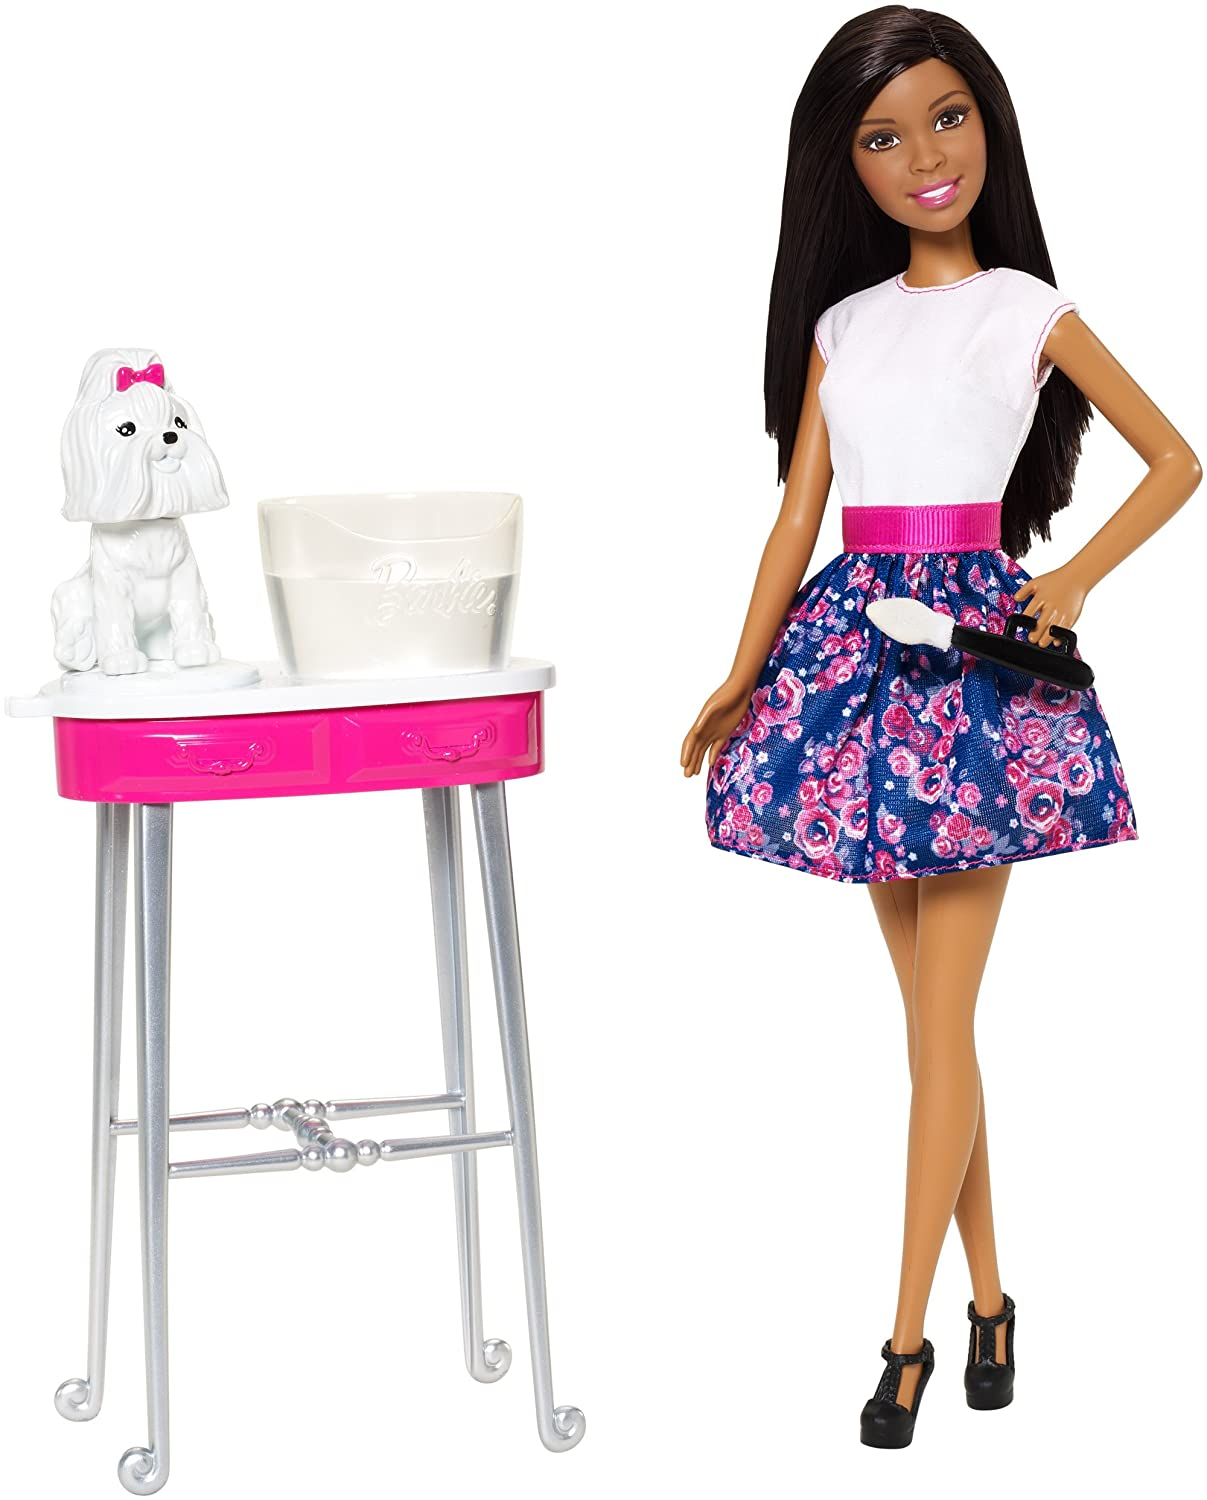 Amazon.com: Barbie Color Me Cute African-American Doll: Toys & Games